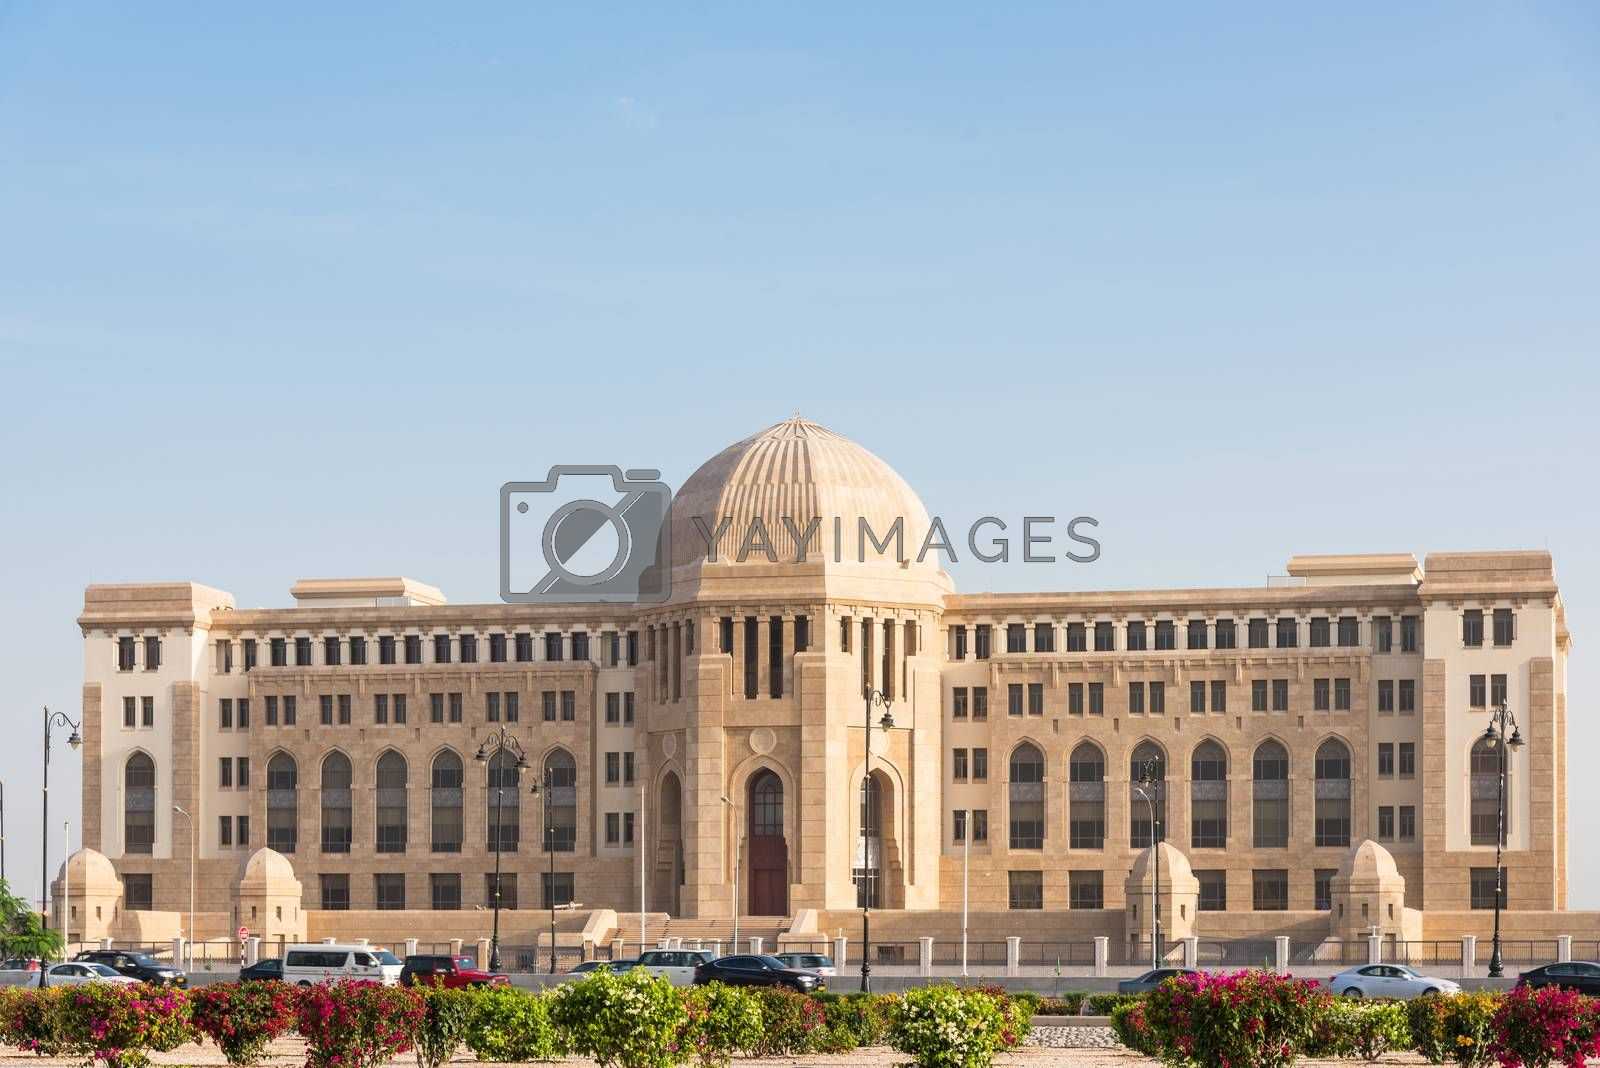 The Supreme Court of Oman in Muscat, The Sultanate of Oman. Cars in the foreground are blurred due to motion.